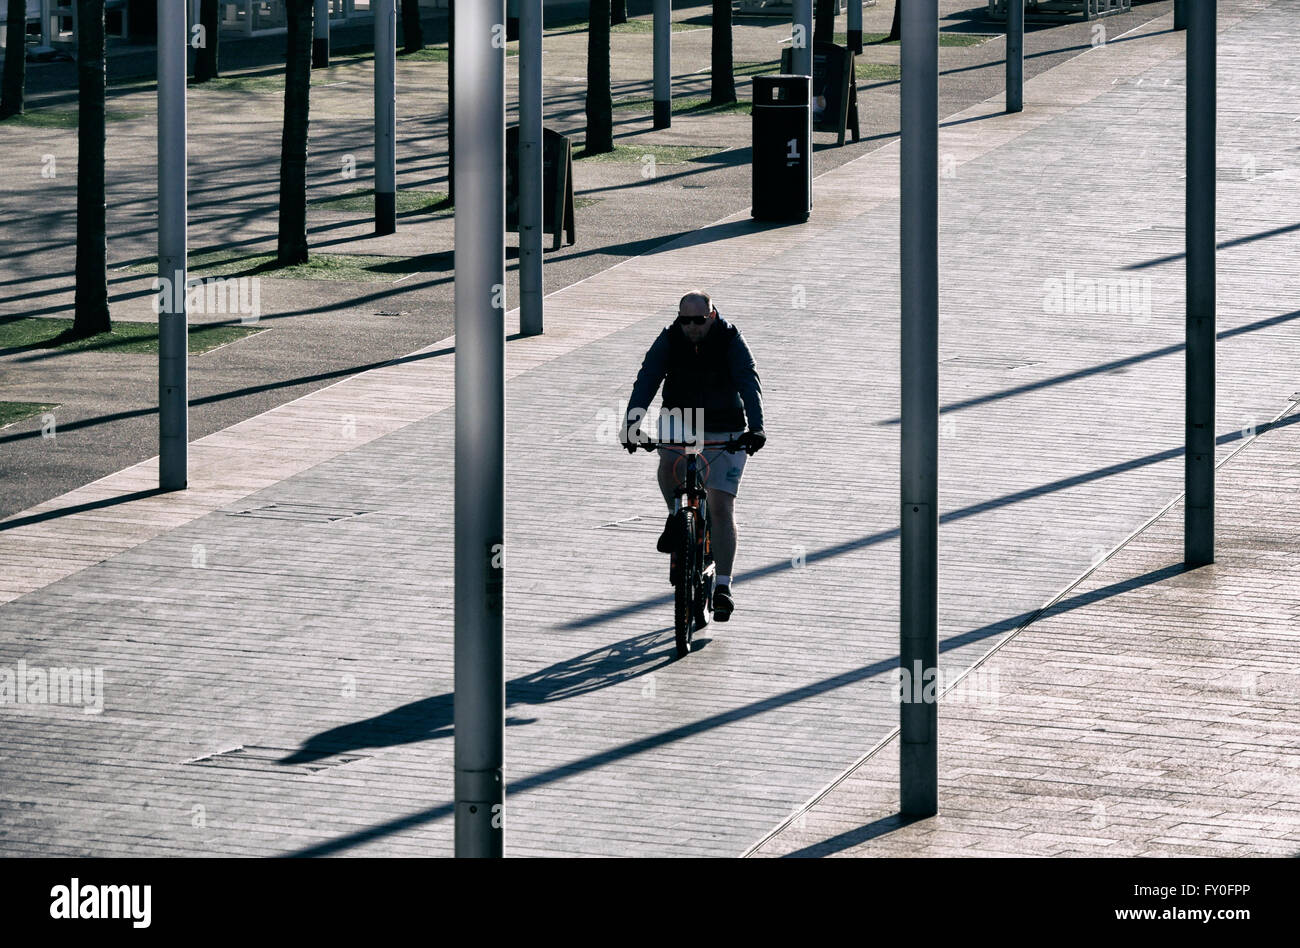 A cyclist enjoying a ride in Liverpool late afternoon. - Stock Image